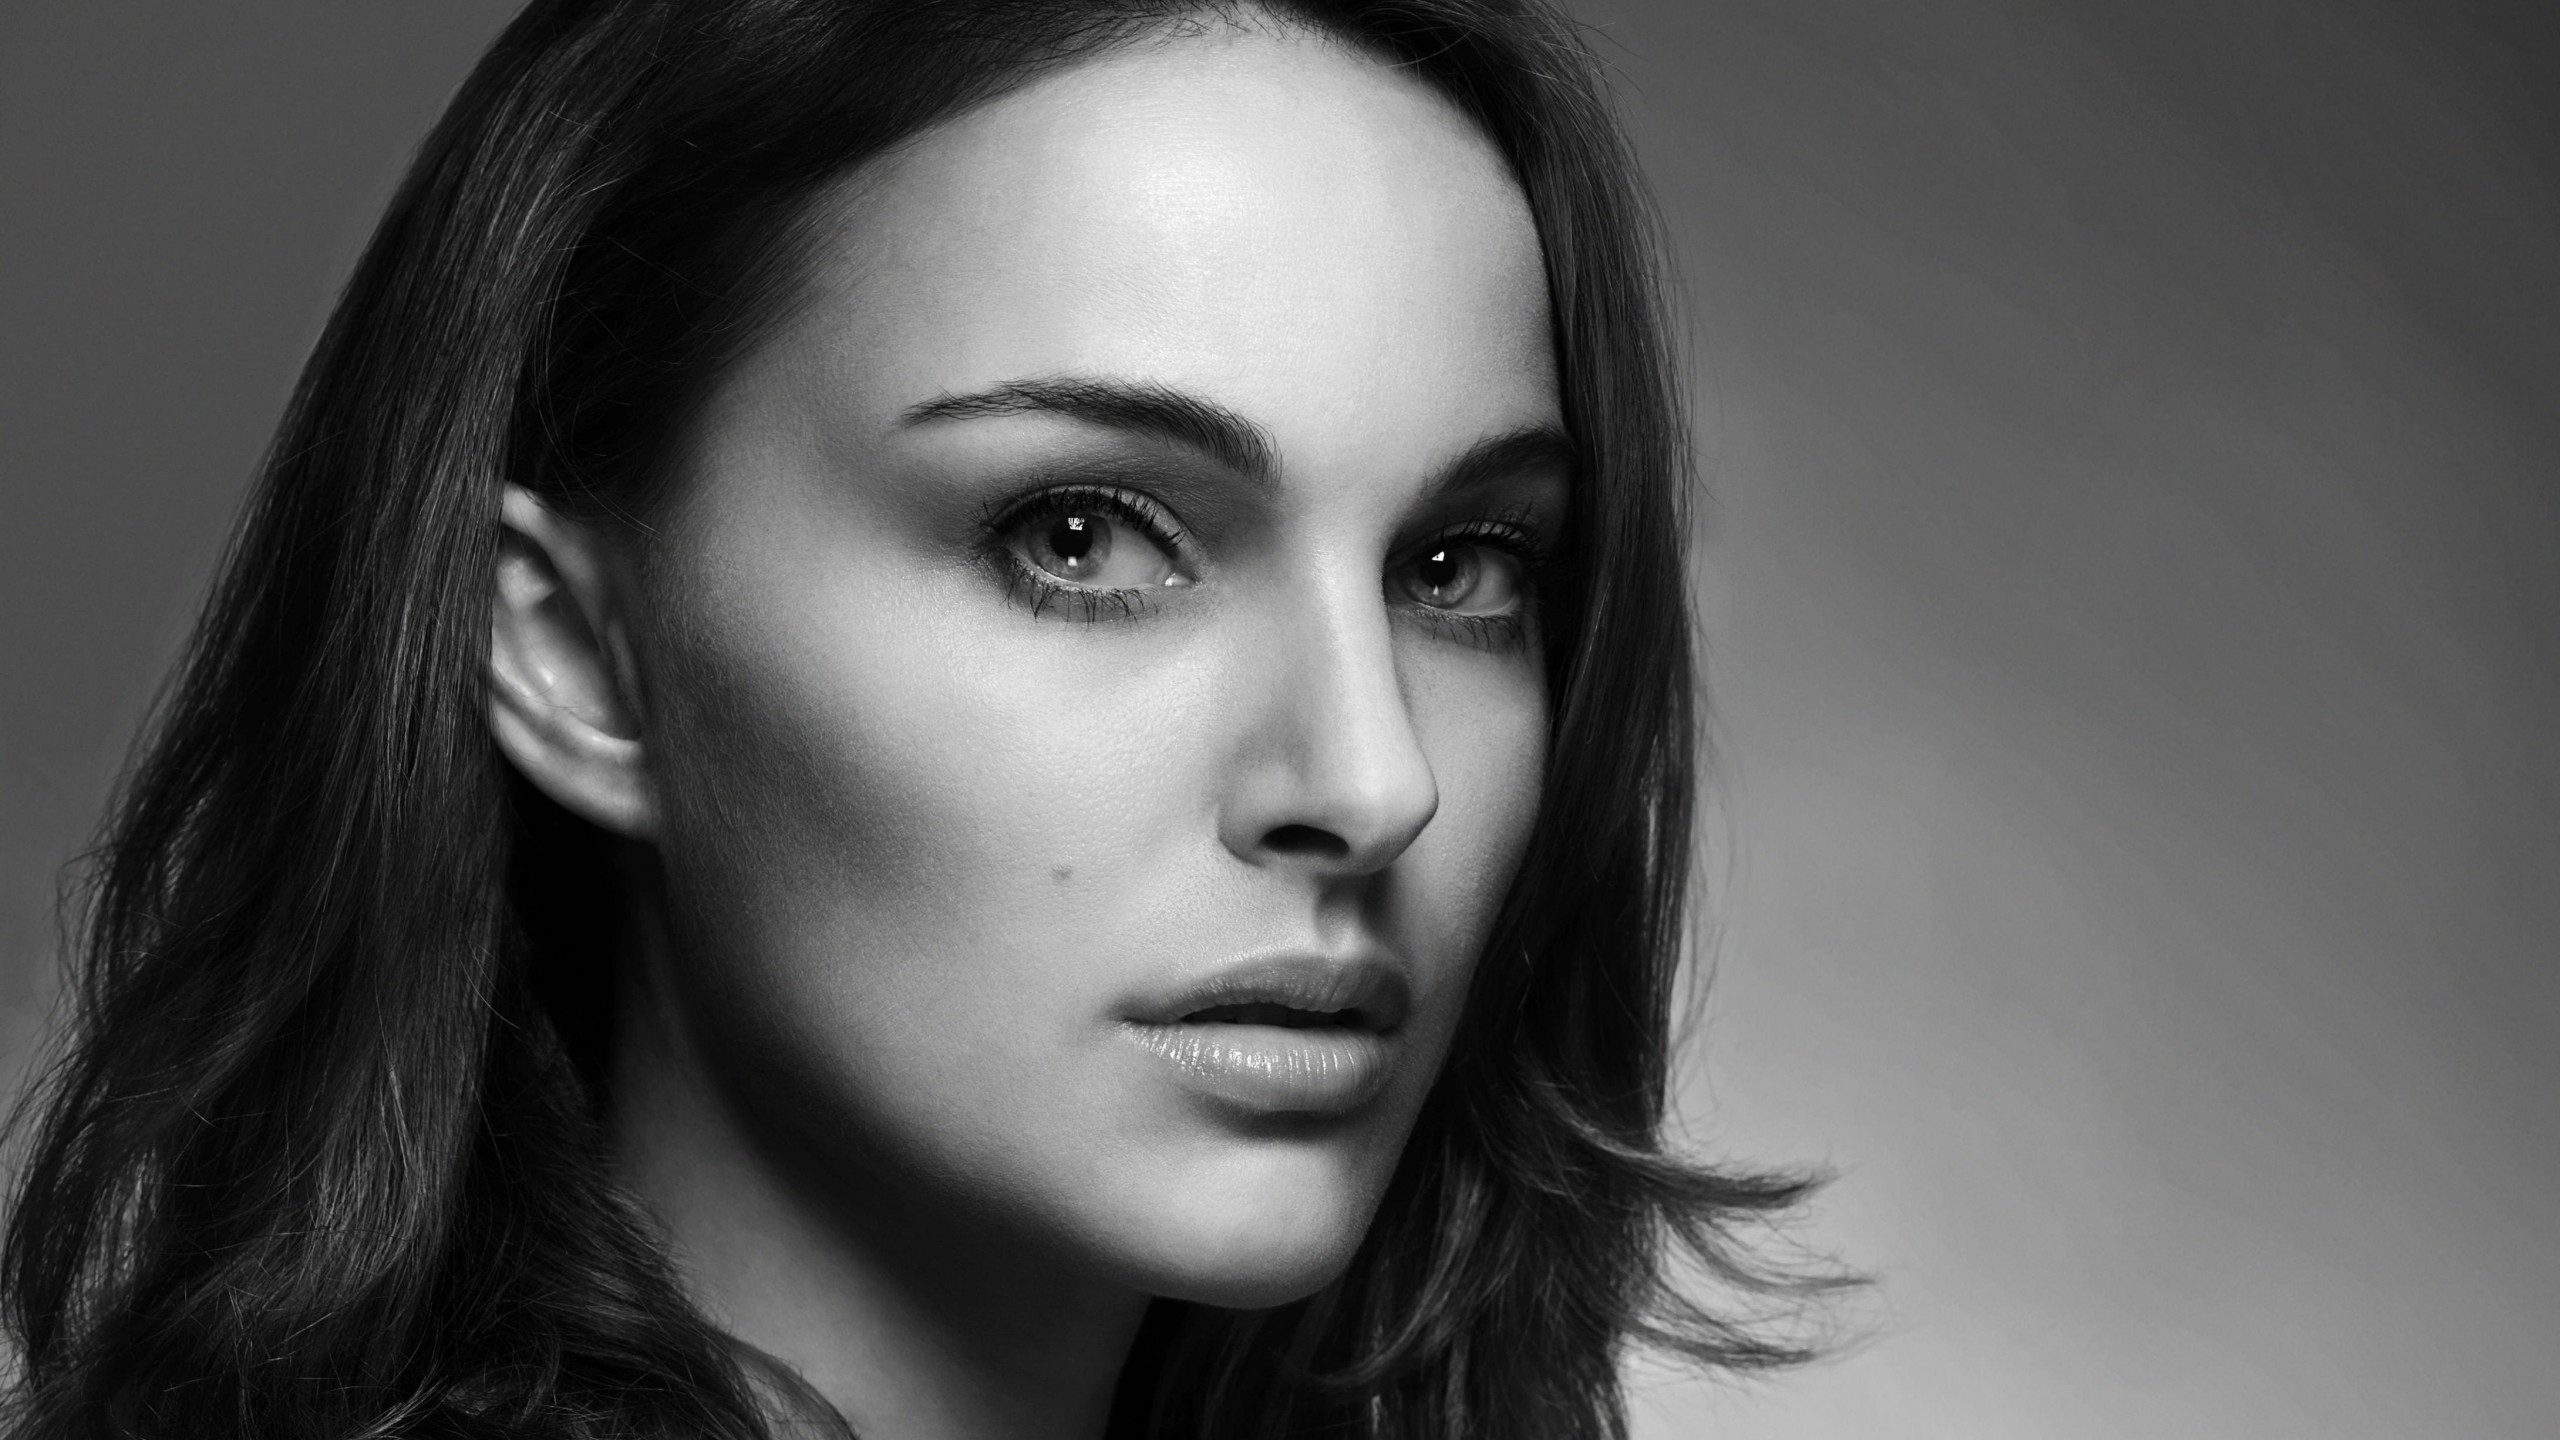 Natalie Portman in Black & White Wallpaper for Desktop 2560x1440